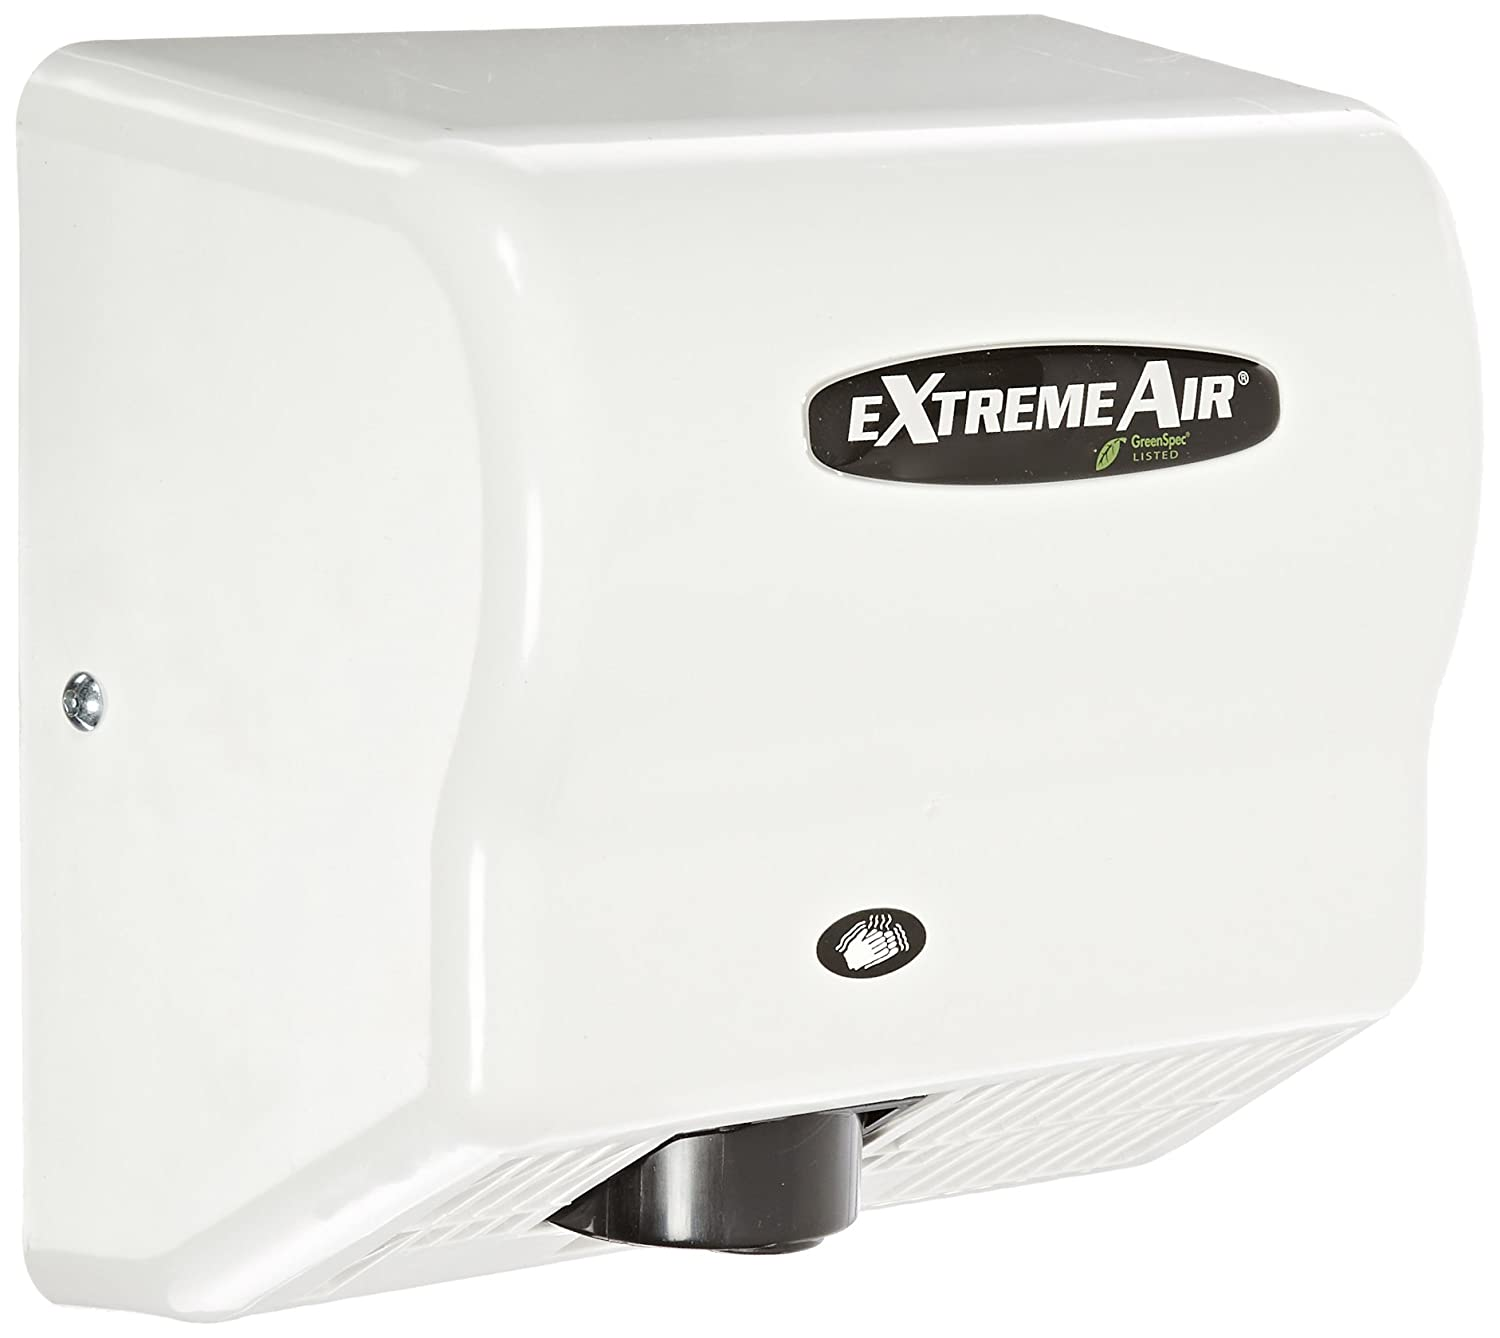 Image of American Dryer ExtremeAir EXT7 ABS Cover High-Speed Automatic Hand Dryer, 12-15 Second Dries, 100-240V, 540W Maximum Power, 50/60Hz, White Hand Dryers